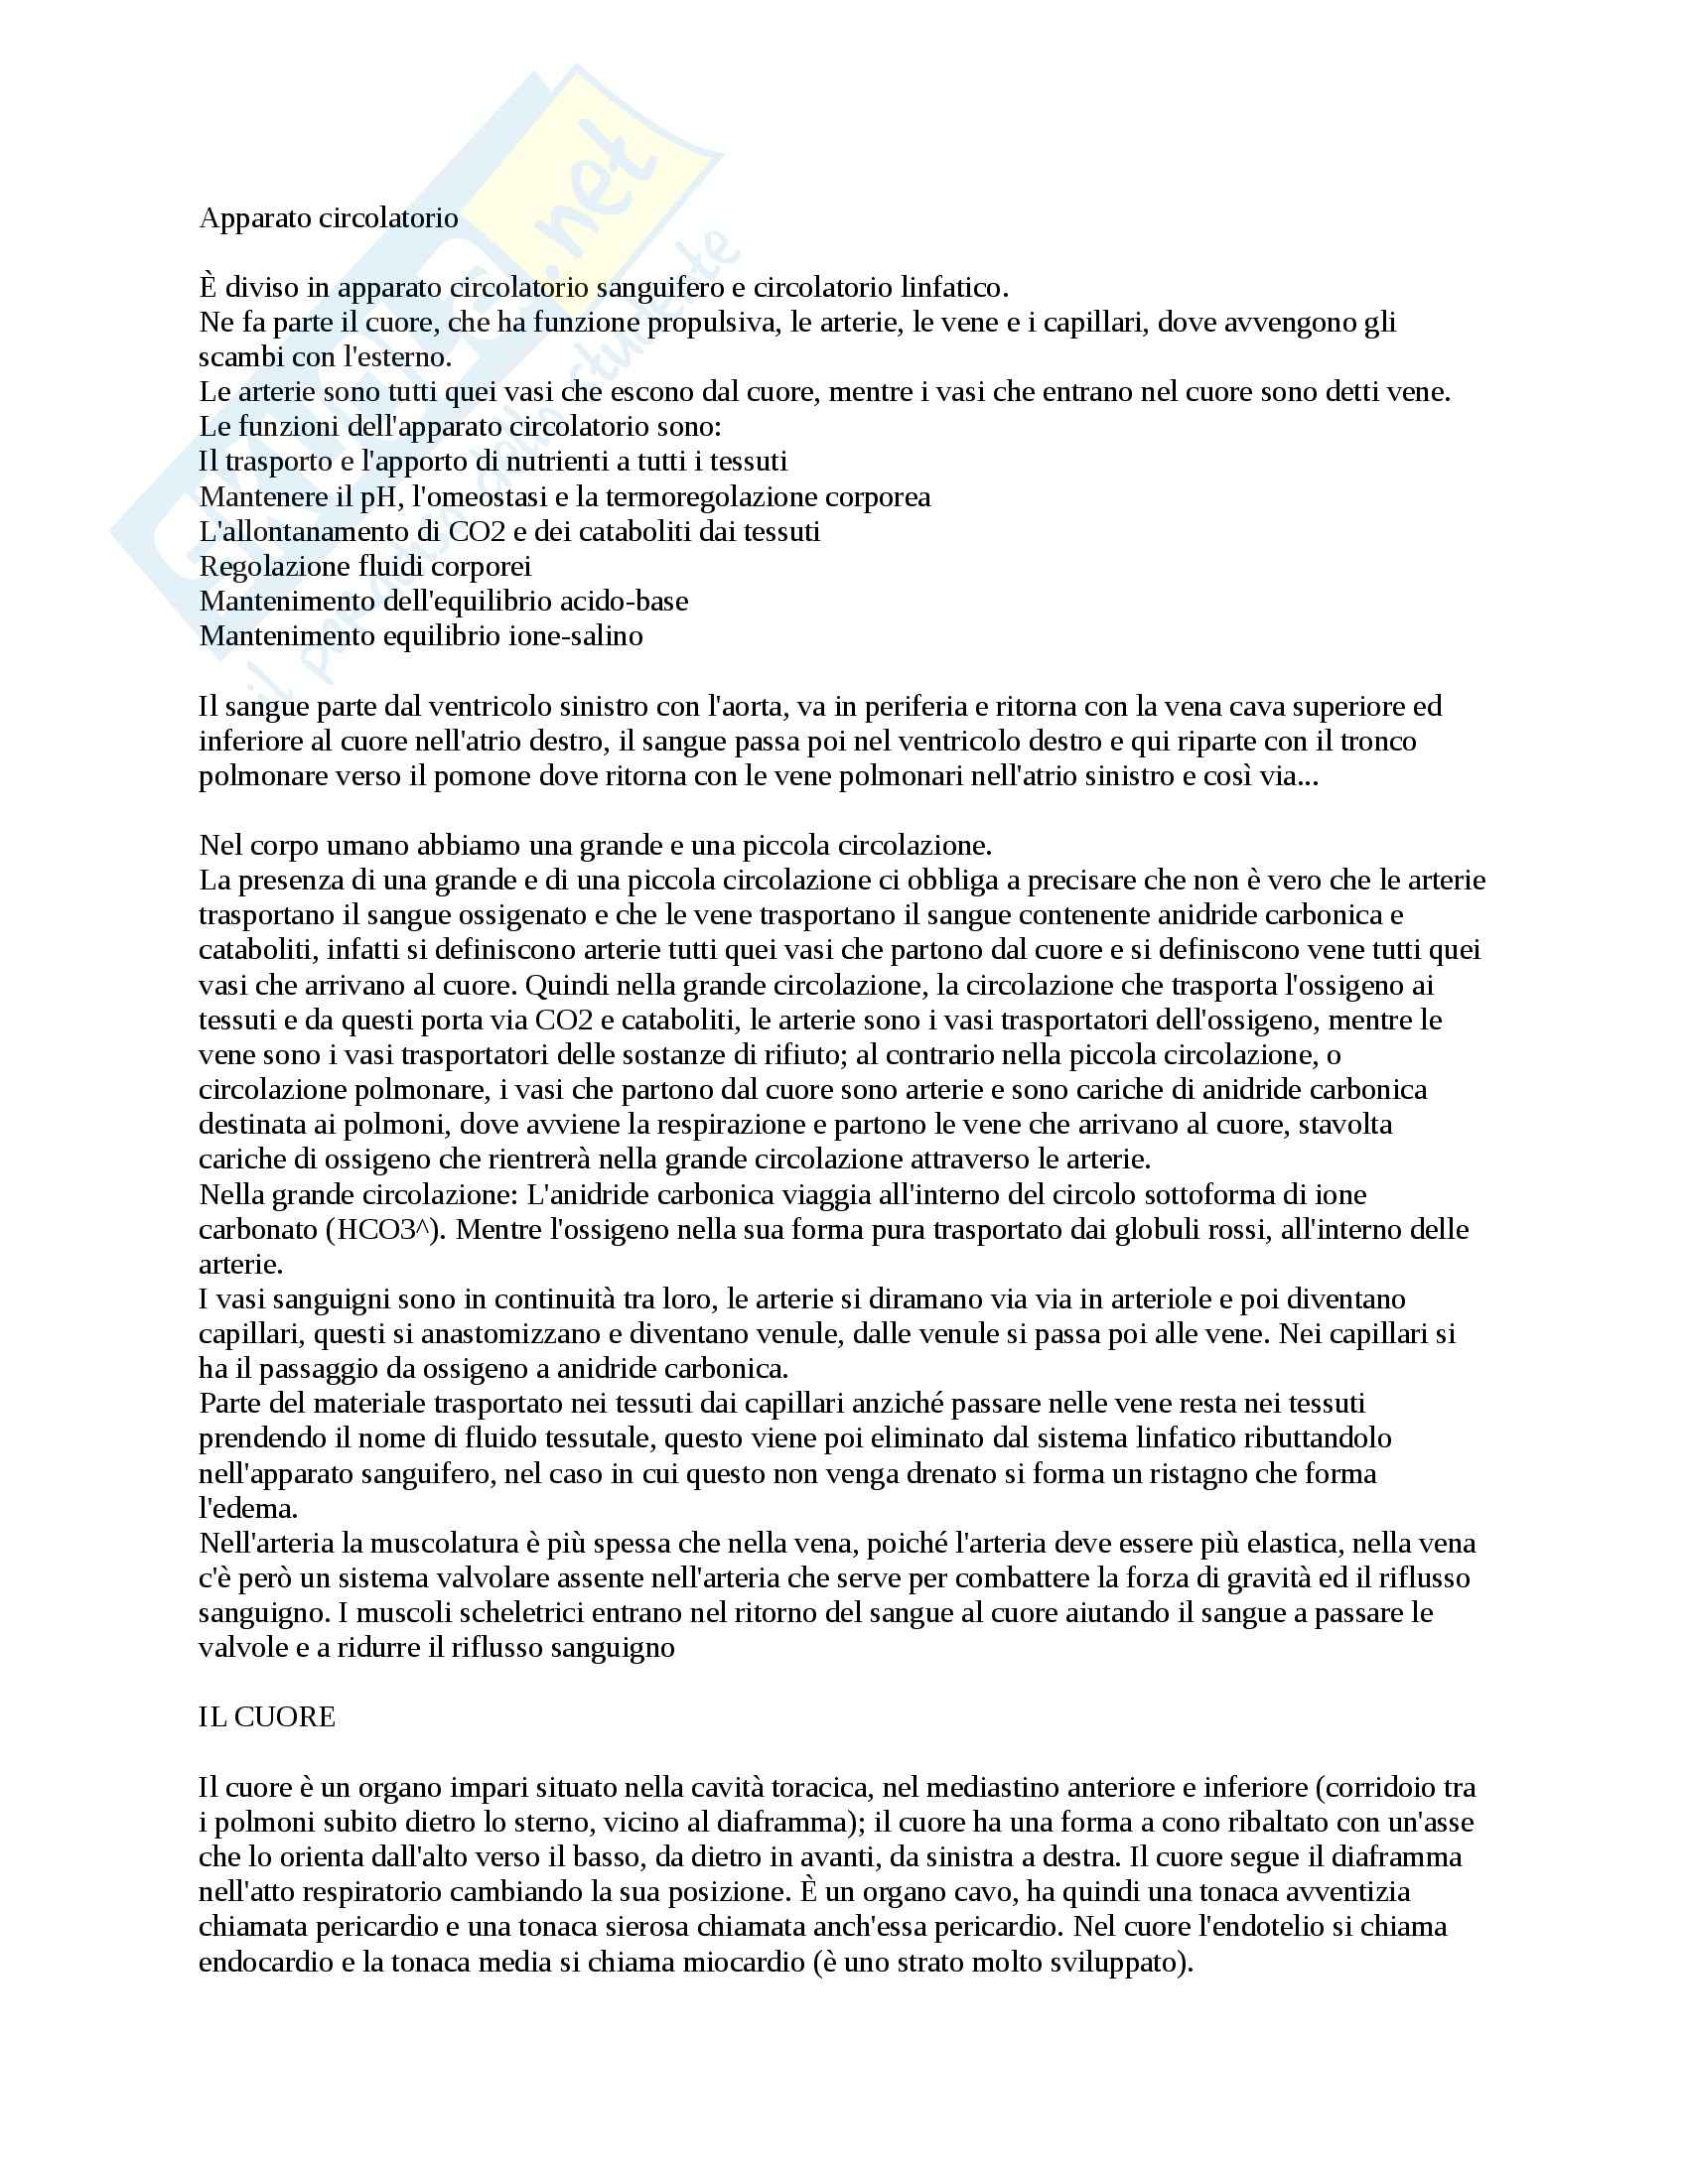 Anatomia - Apparato circolatorio